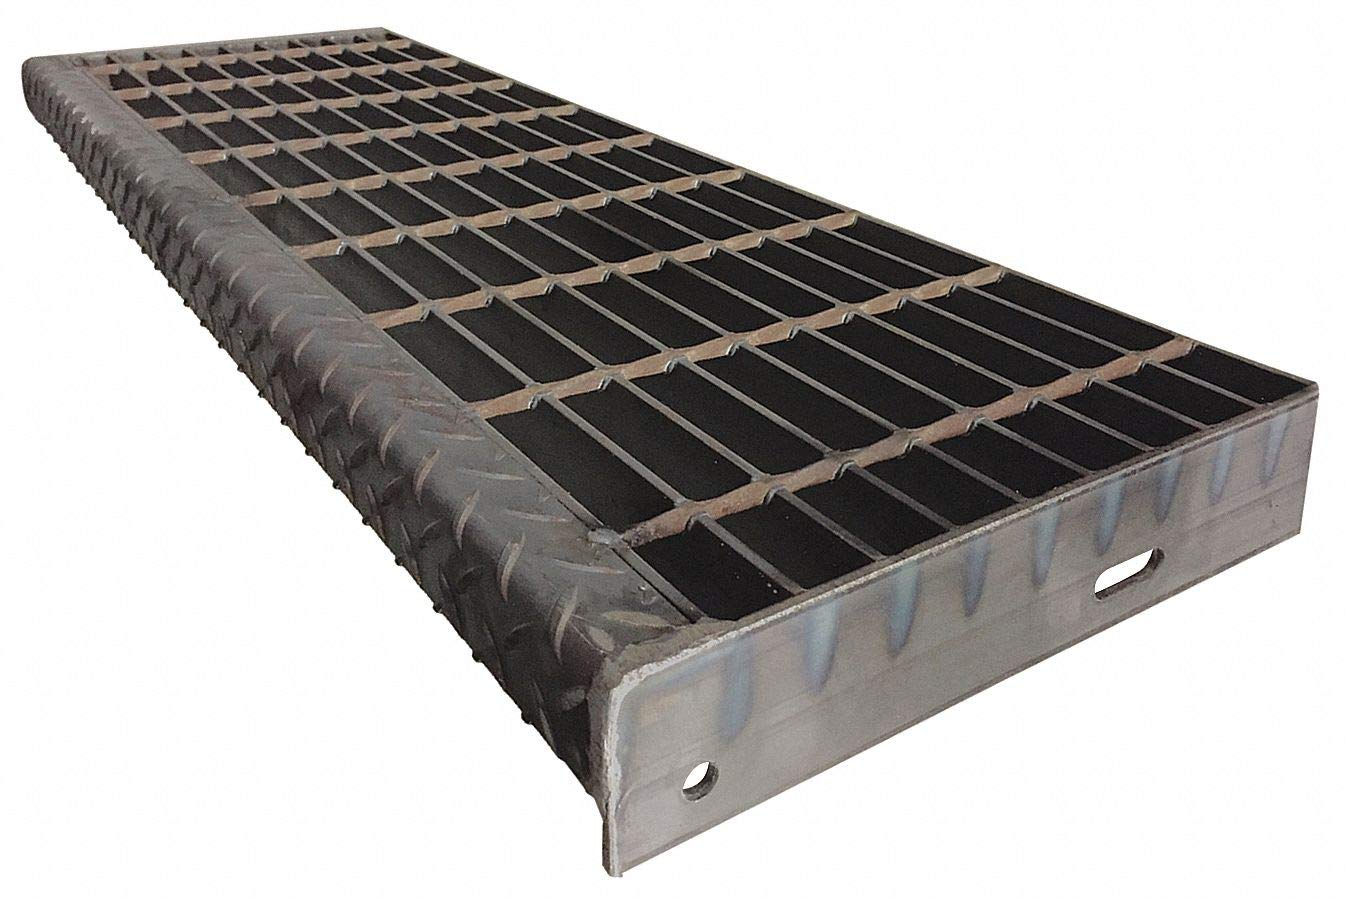 Carbon Steel Smooth Surface Bar Grating Stair Tread, 36'' Width, 9.75'' Depth, 1.25'' Height by DIRECT METALS